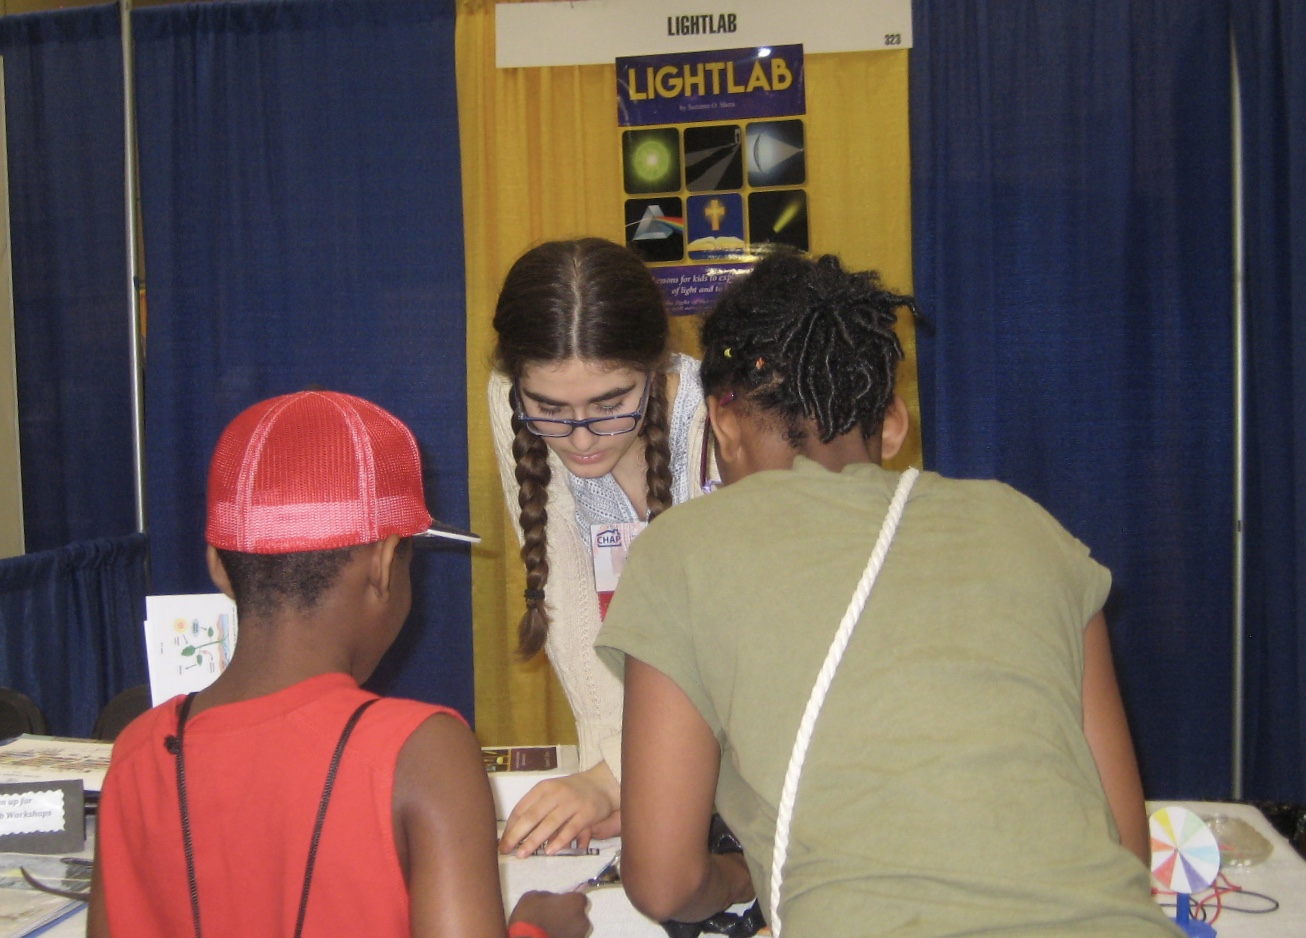 Miriam assisting two attendants at CHAP (Christian Homeschool Association of PA).